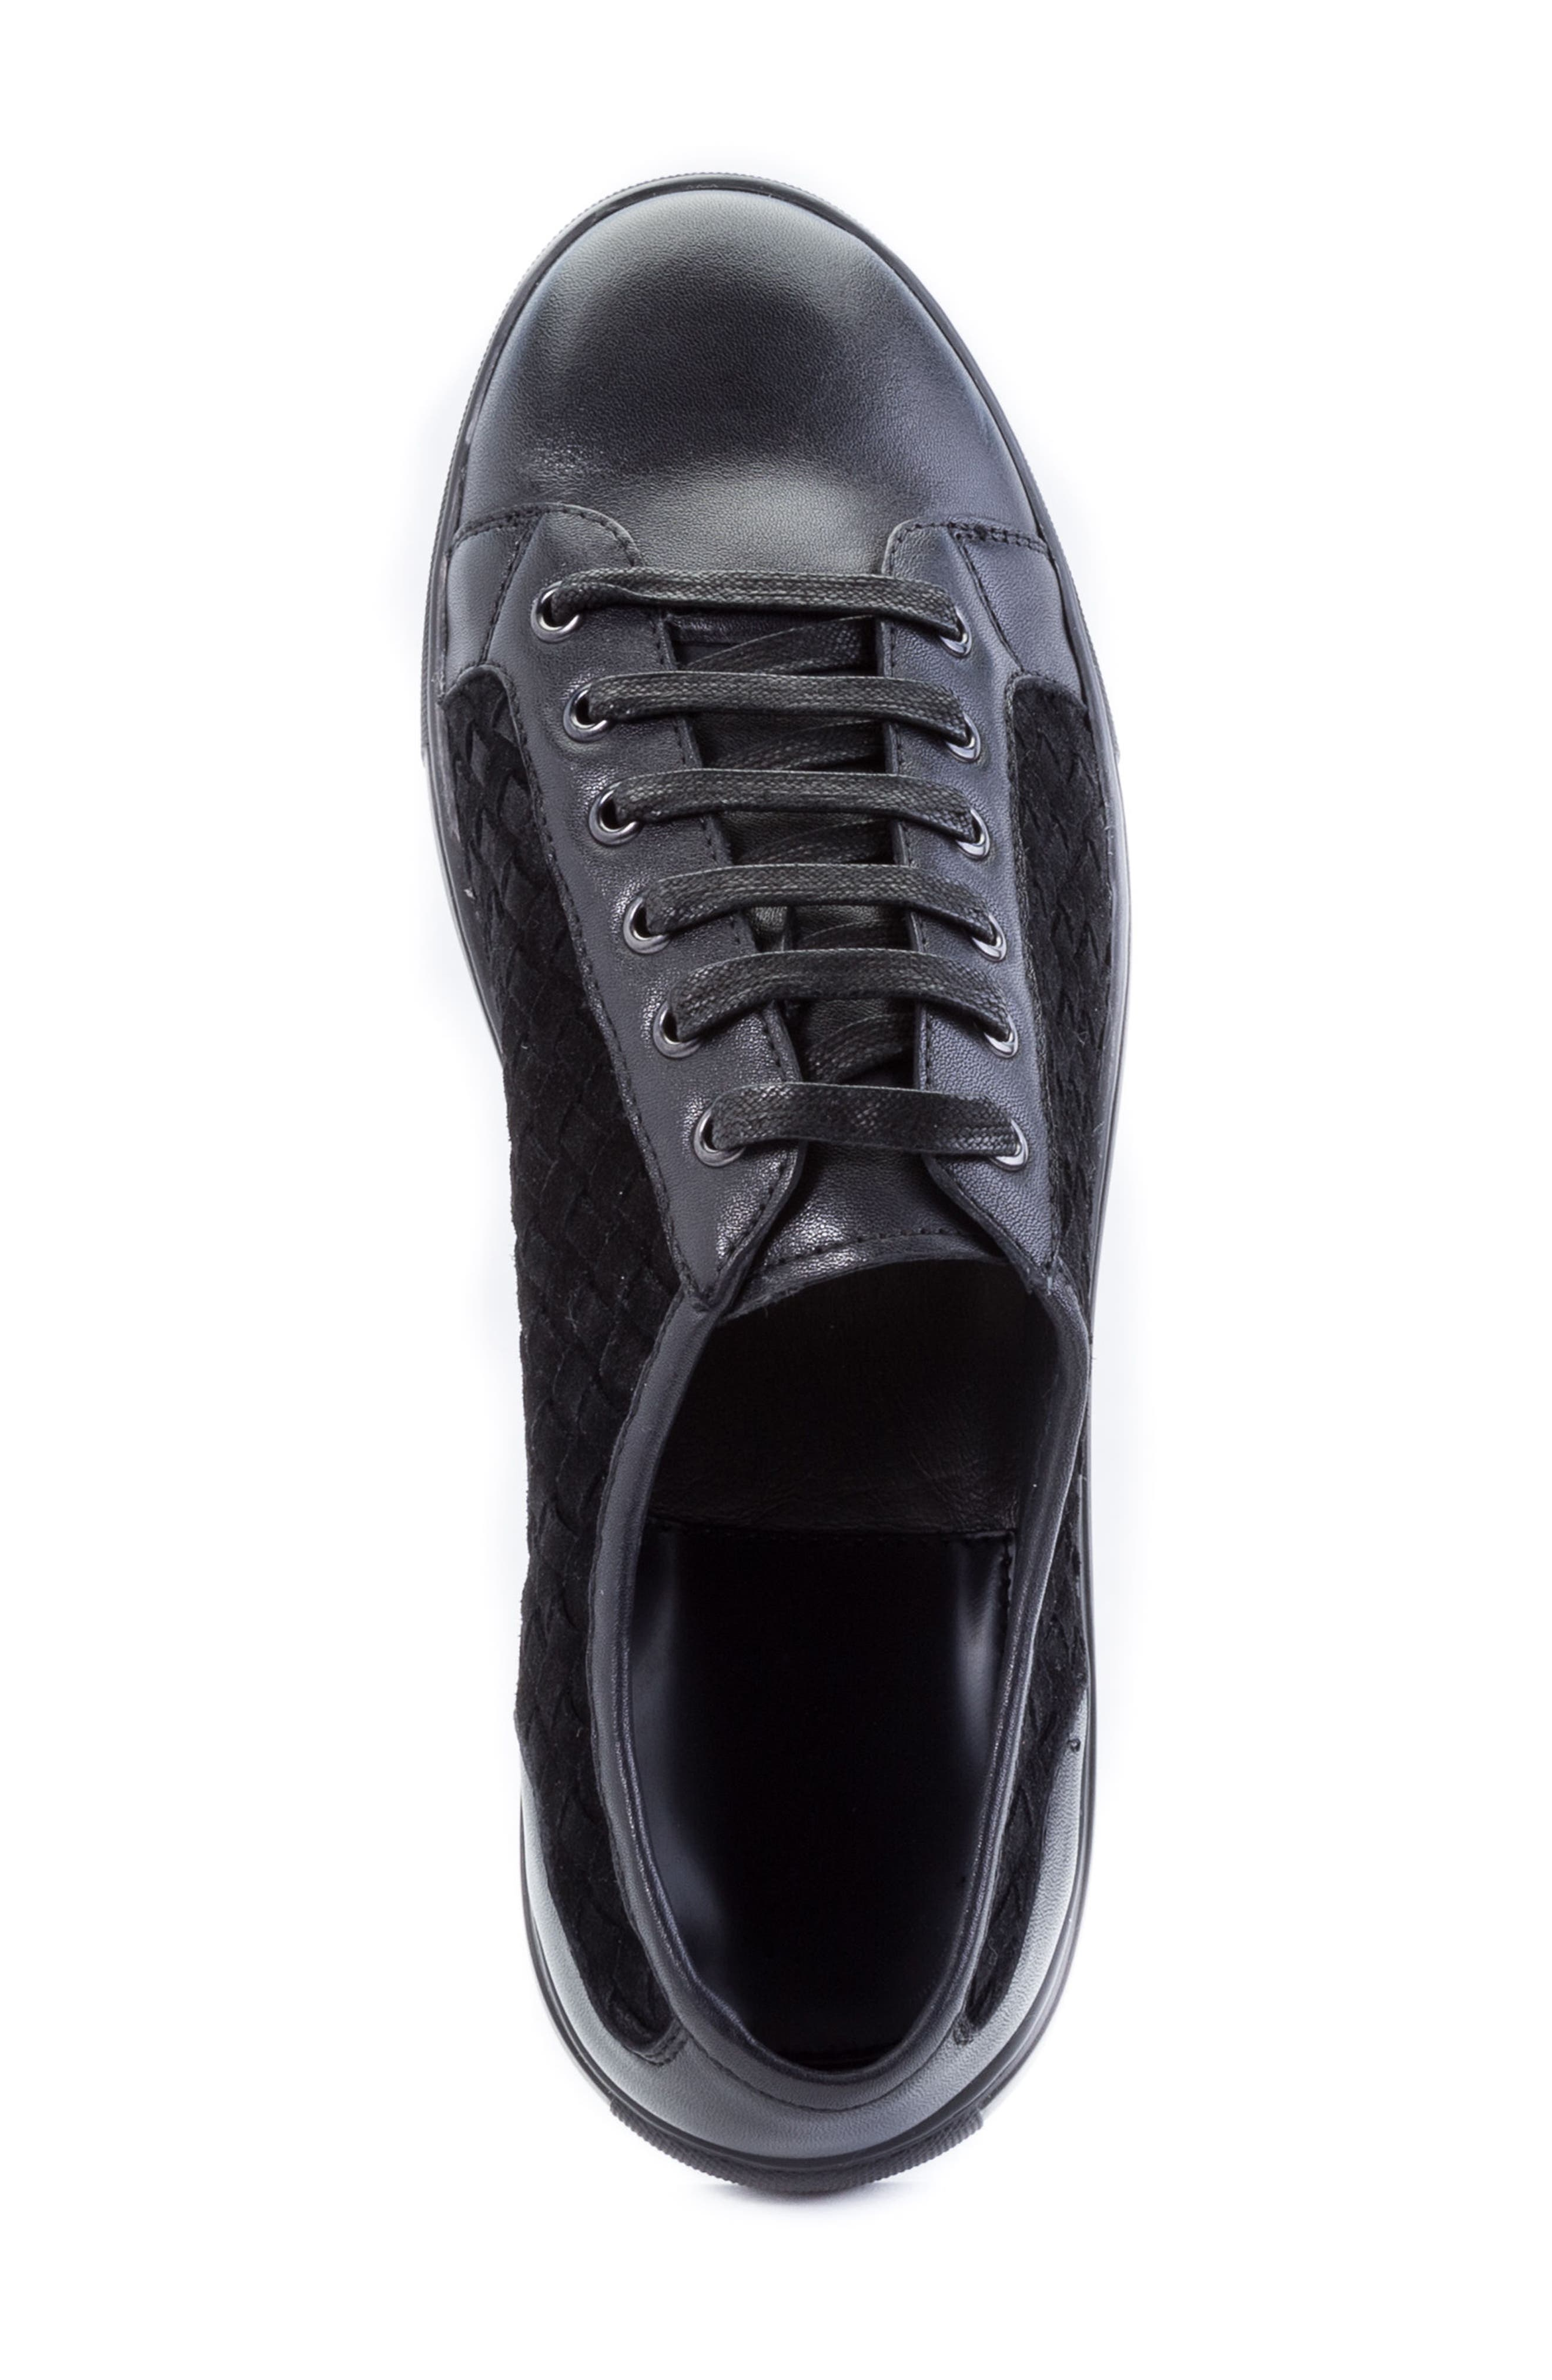 Player Woven Low Top Sneaker,                             Alternate thumbnail 5, color,                             BLACK LEATHER/ SUEDE